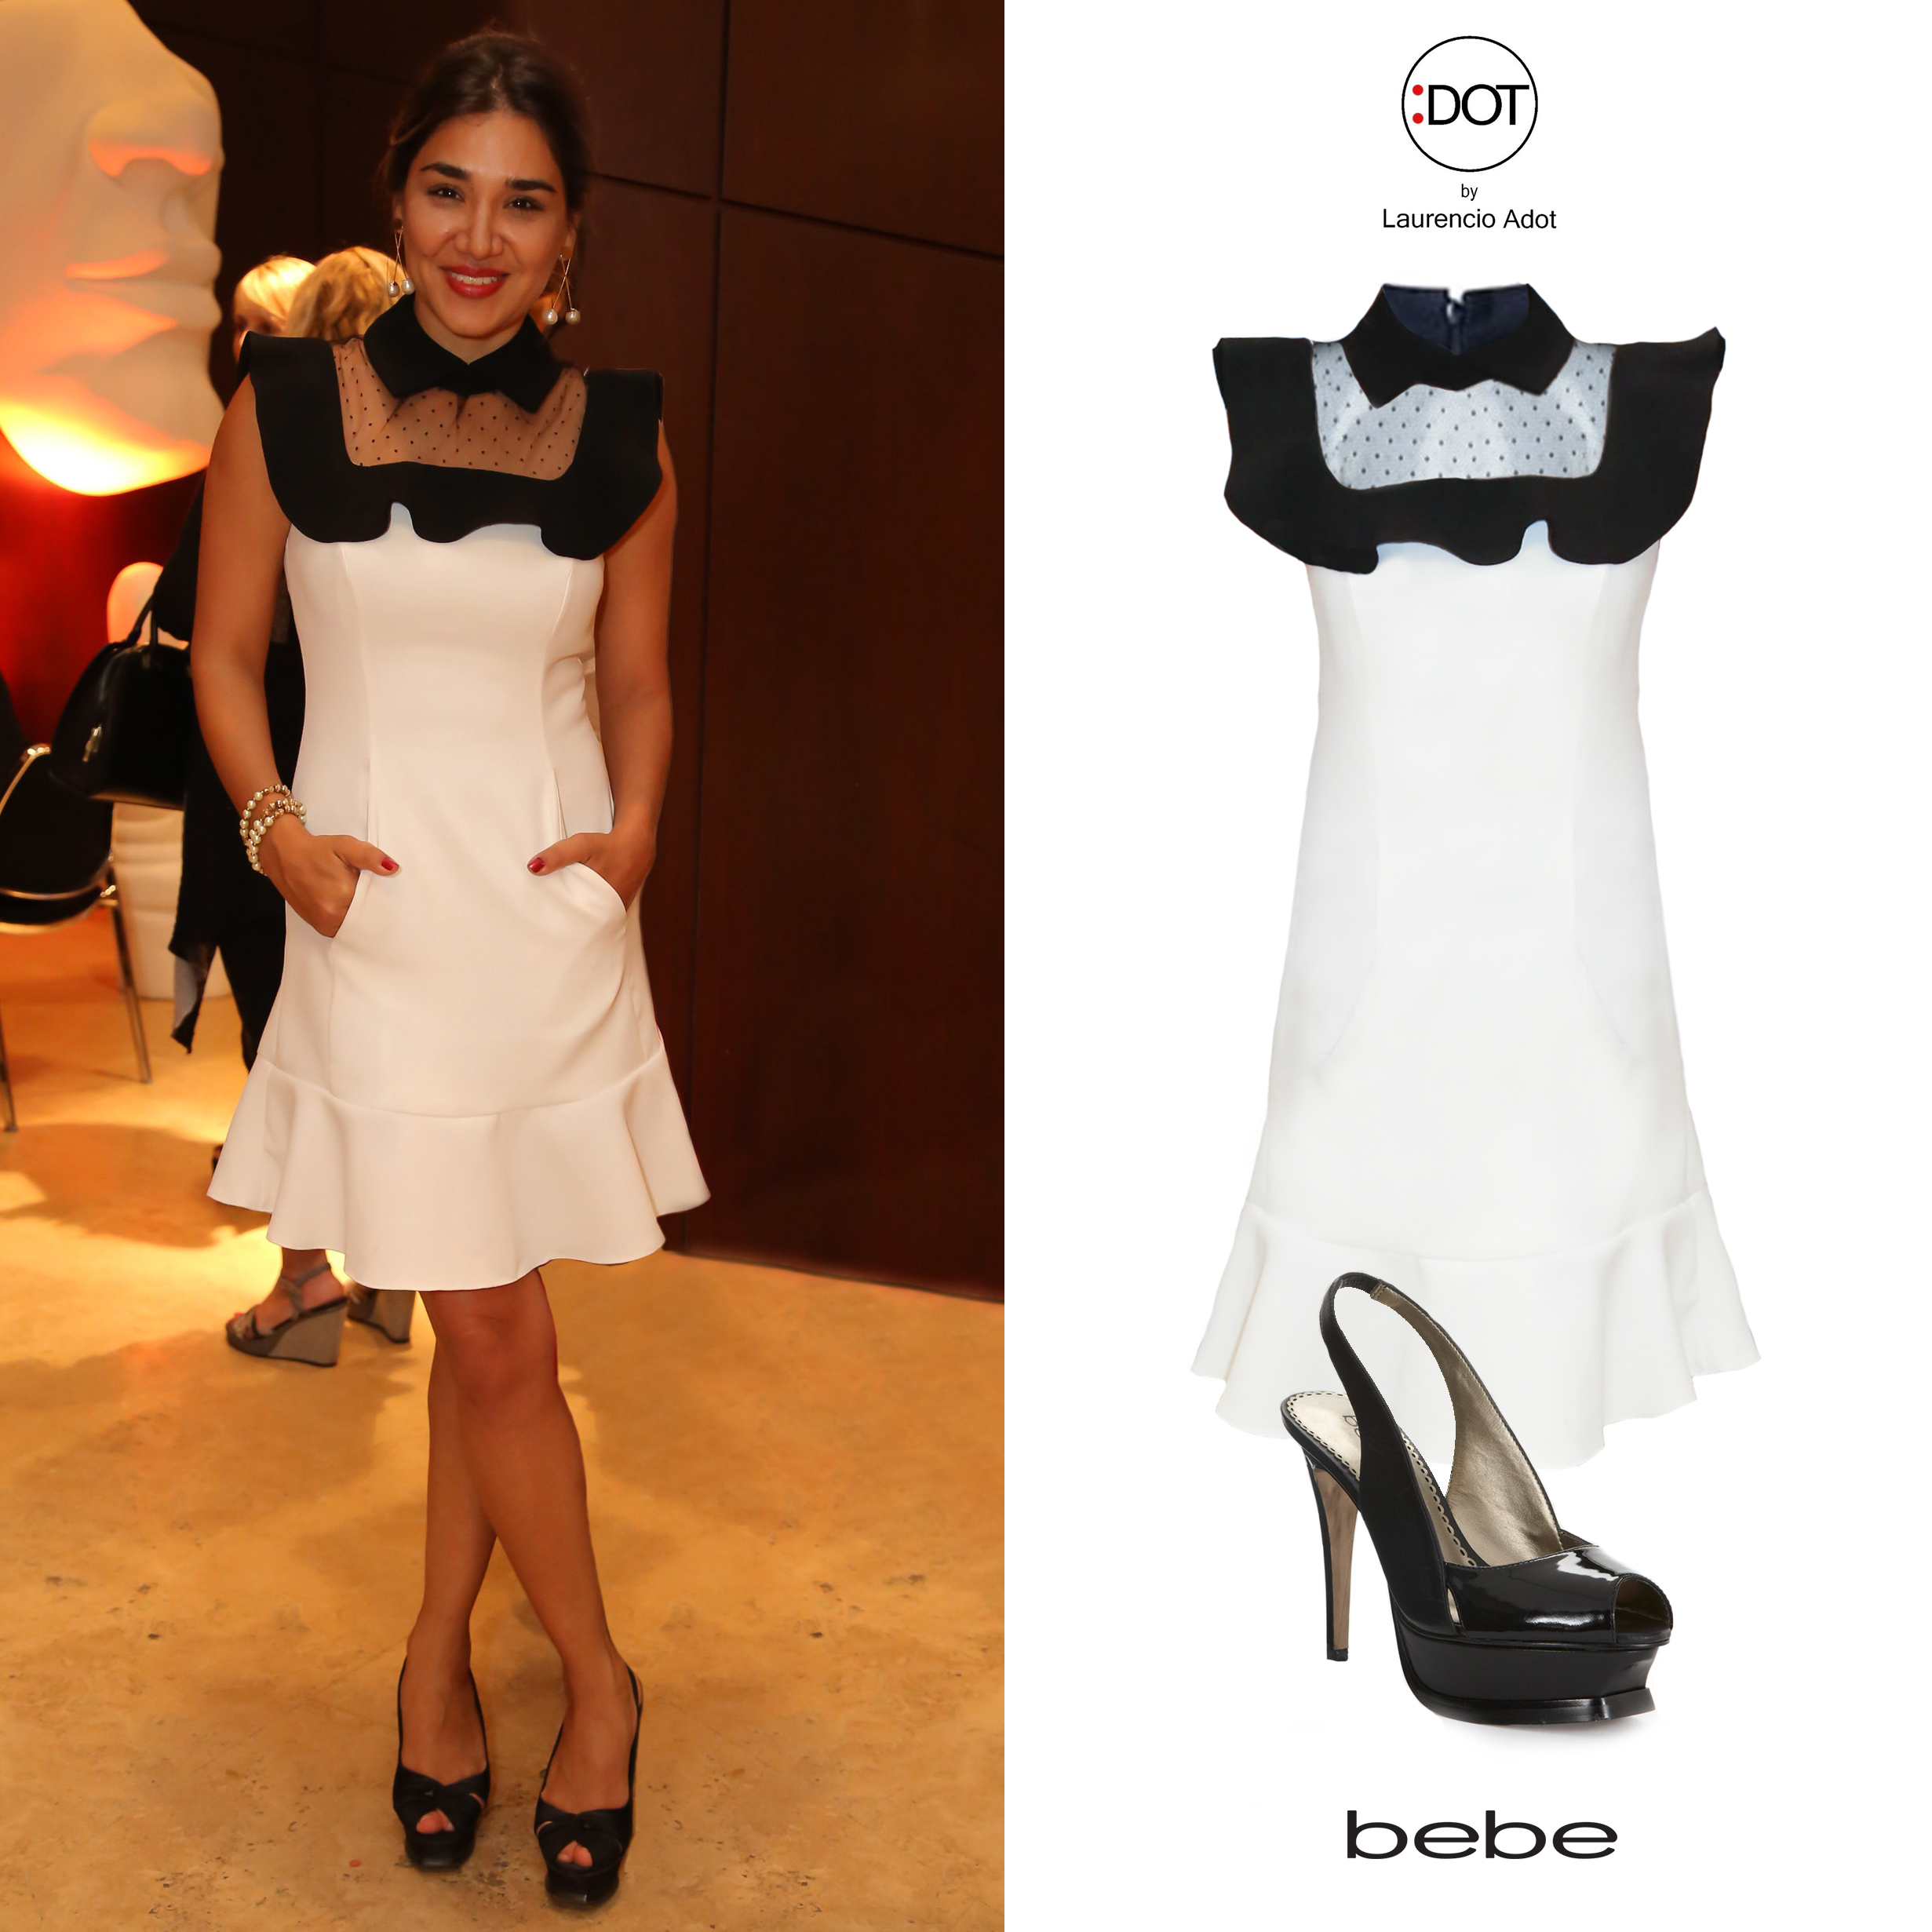 Vivi_Viviana_Gallo_Make_a_Wish_2016_Vestido_Blanco_Dot_Store_Laurencio_Adot_Verano_SS_2017_Zapatos_Zahara_Slingback_Bebe_Shoes.jpg